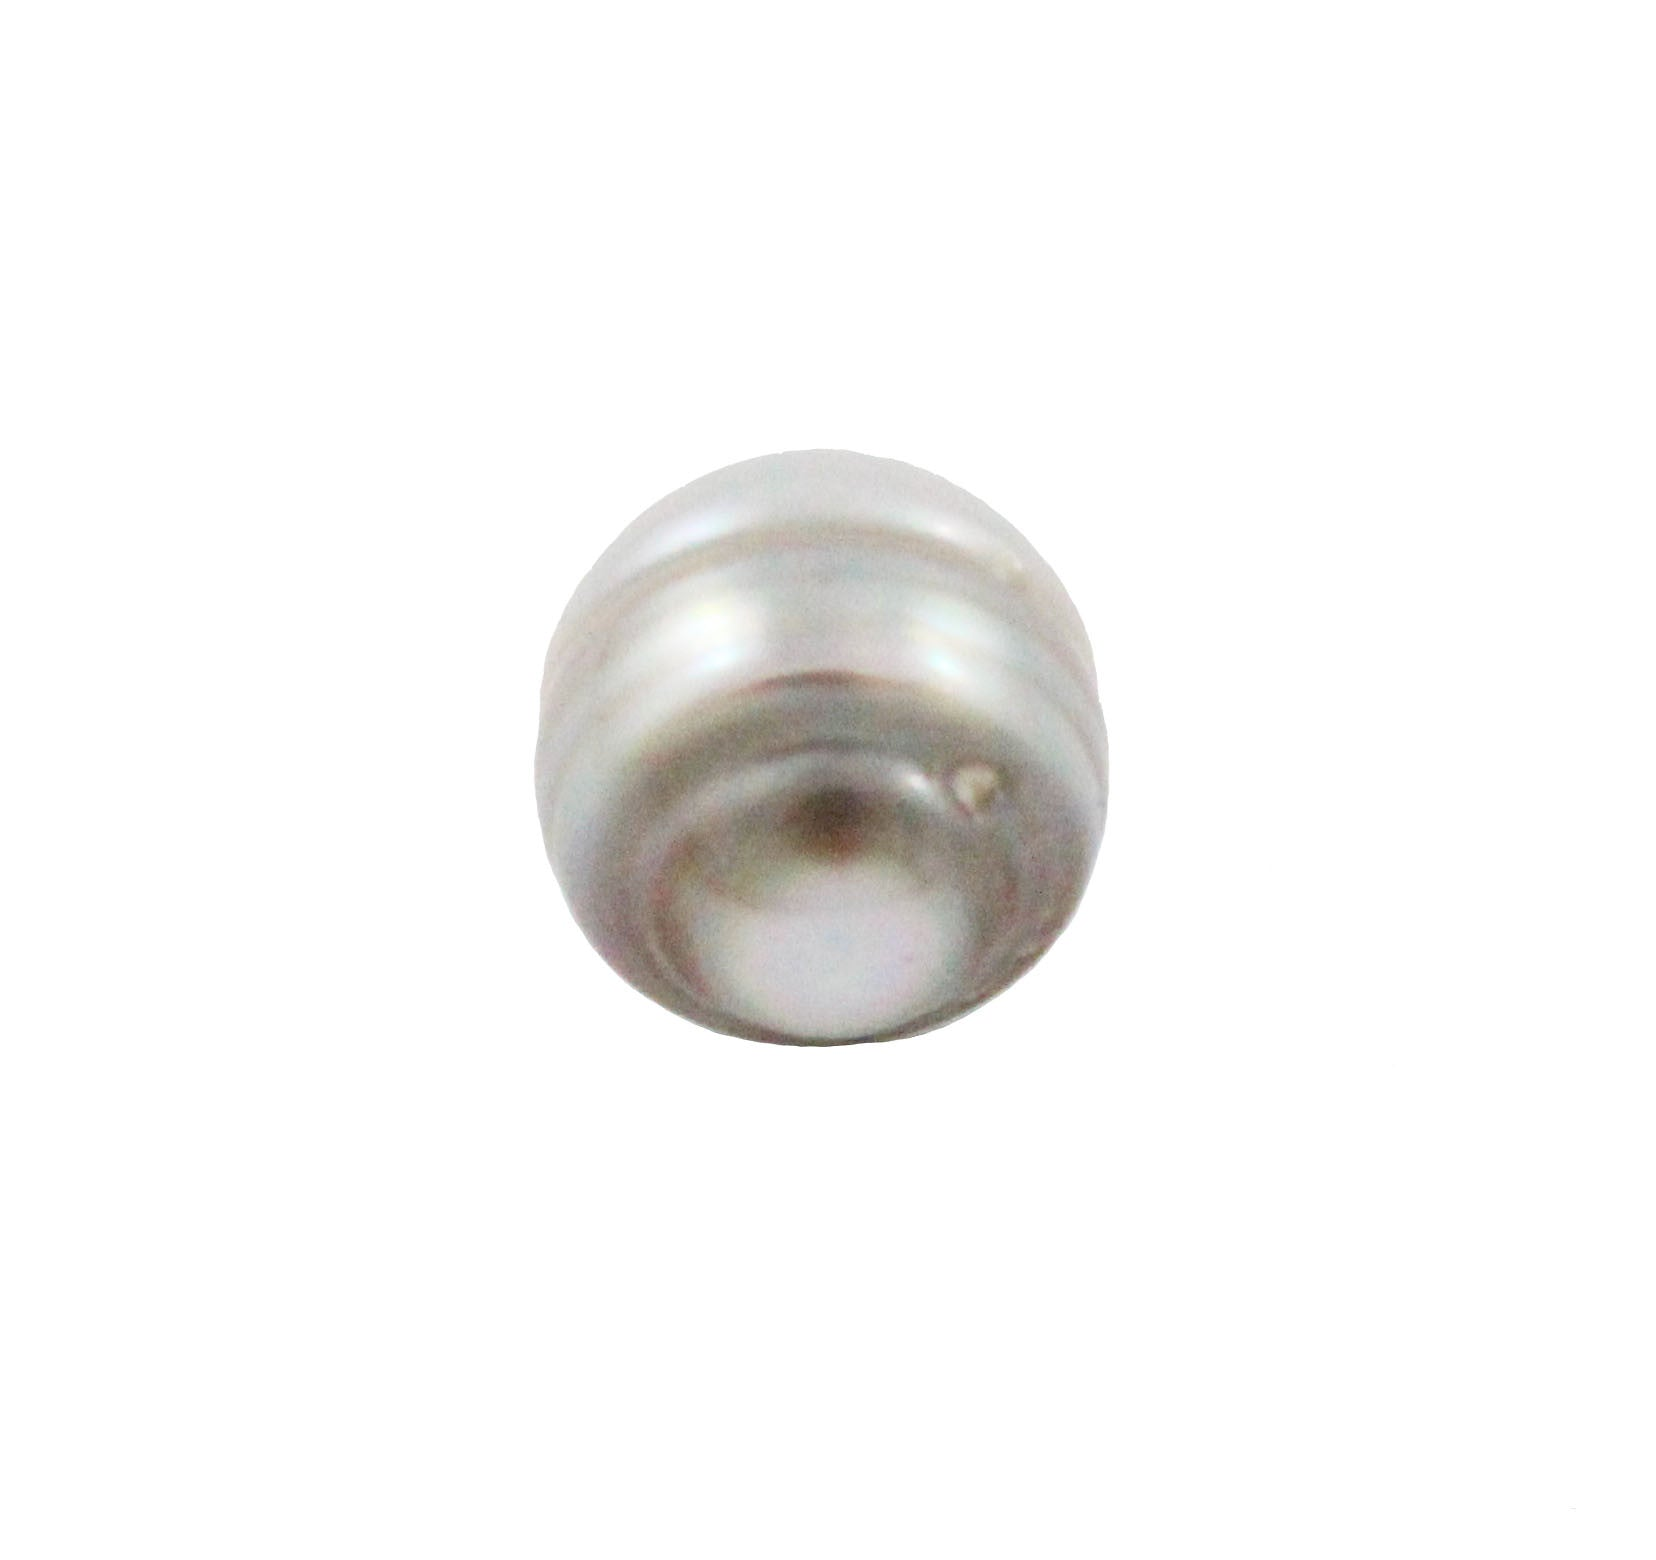 Tahitian pearl undrilled 0.98gr mm 10.14x8.34mm - Purchase only with custom order - Sarah Hughes - 5